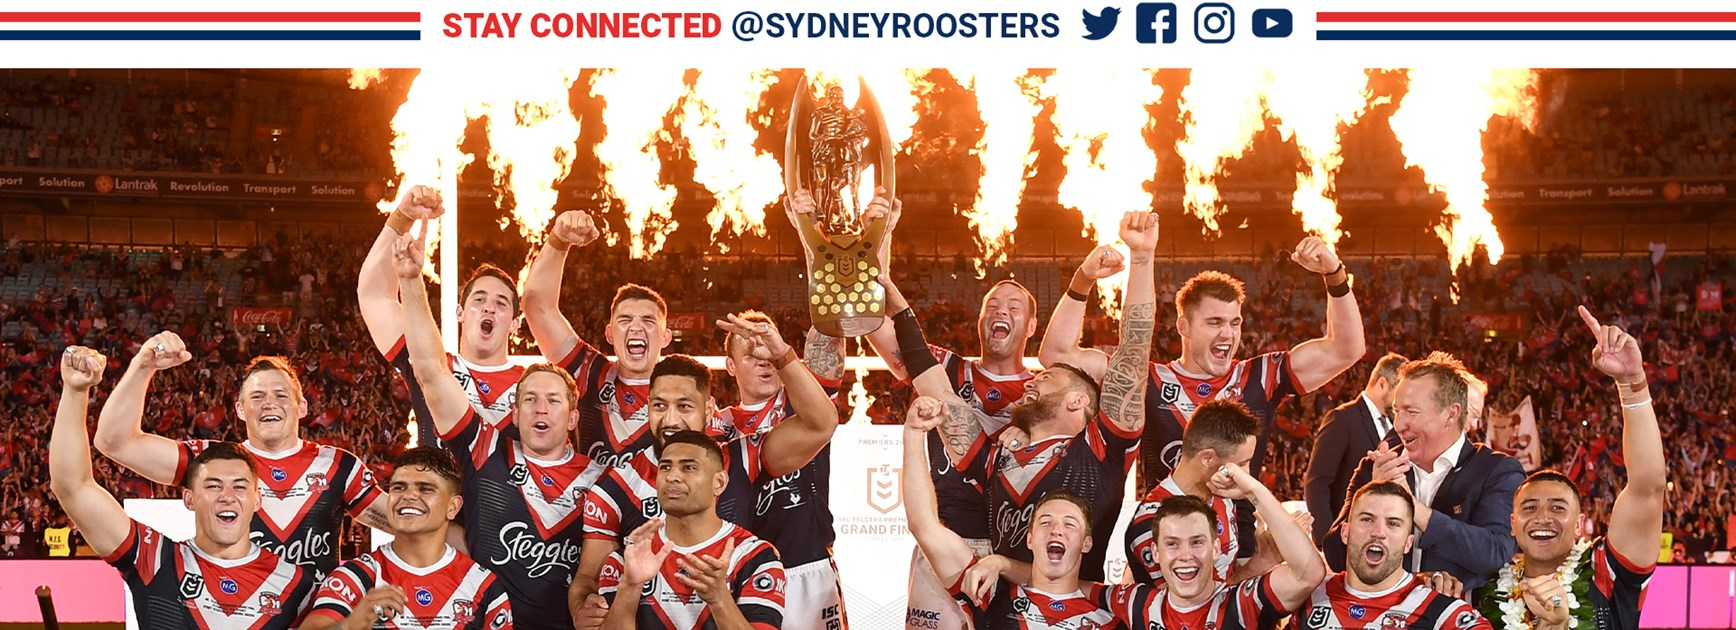 Roosters Video Chat Backgrounds